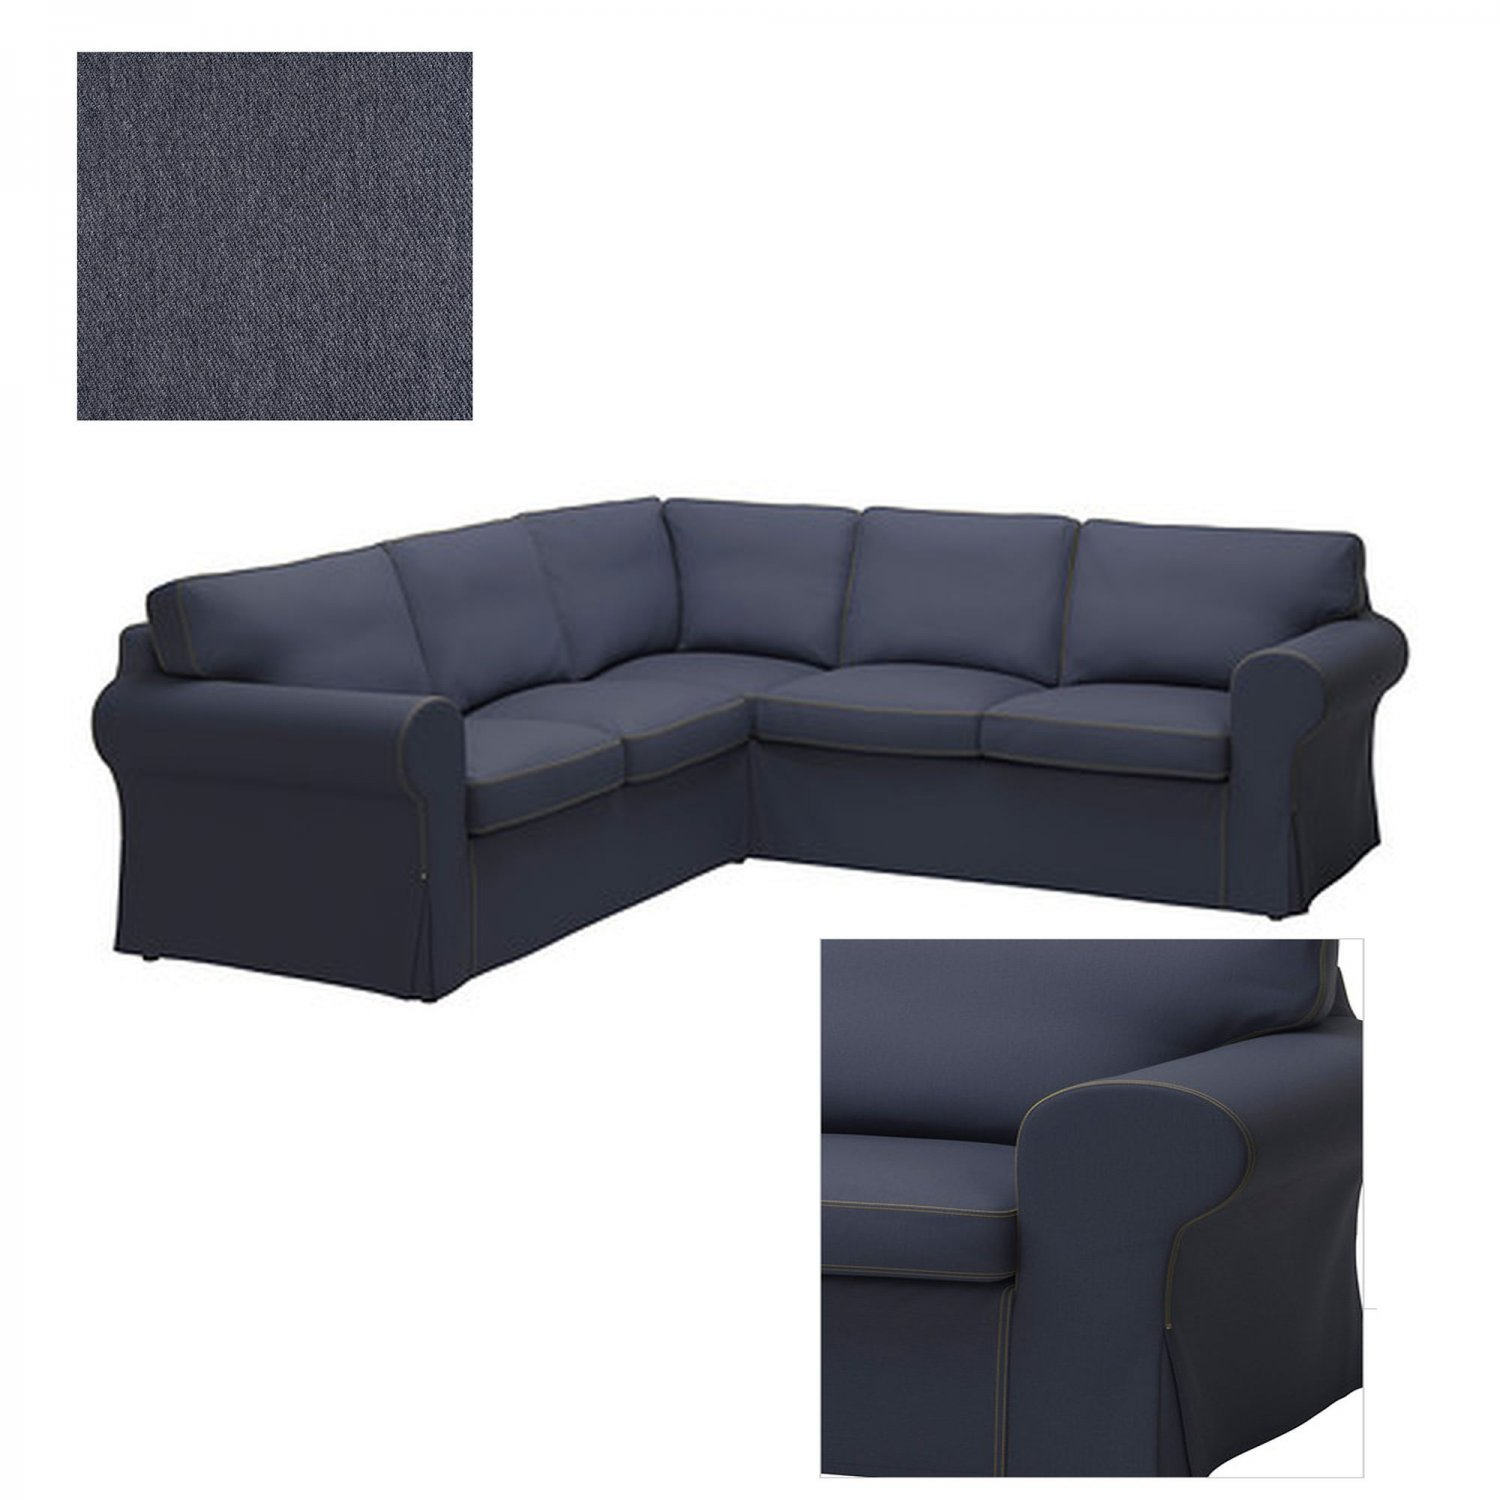 denim covers chair futons sofa photos futon slipcovers and slip t cover fascinating loveseat cushion matching concept